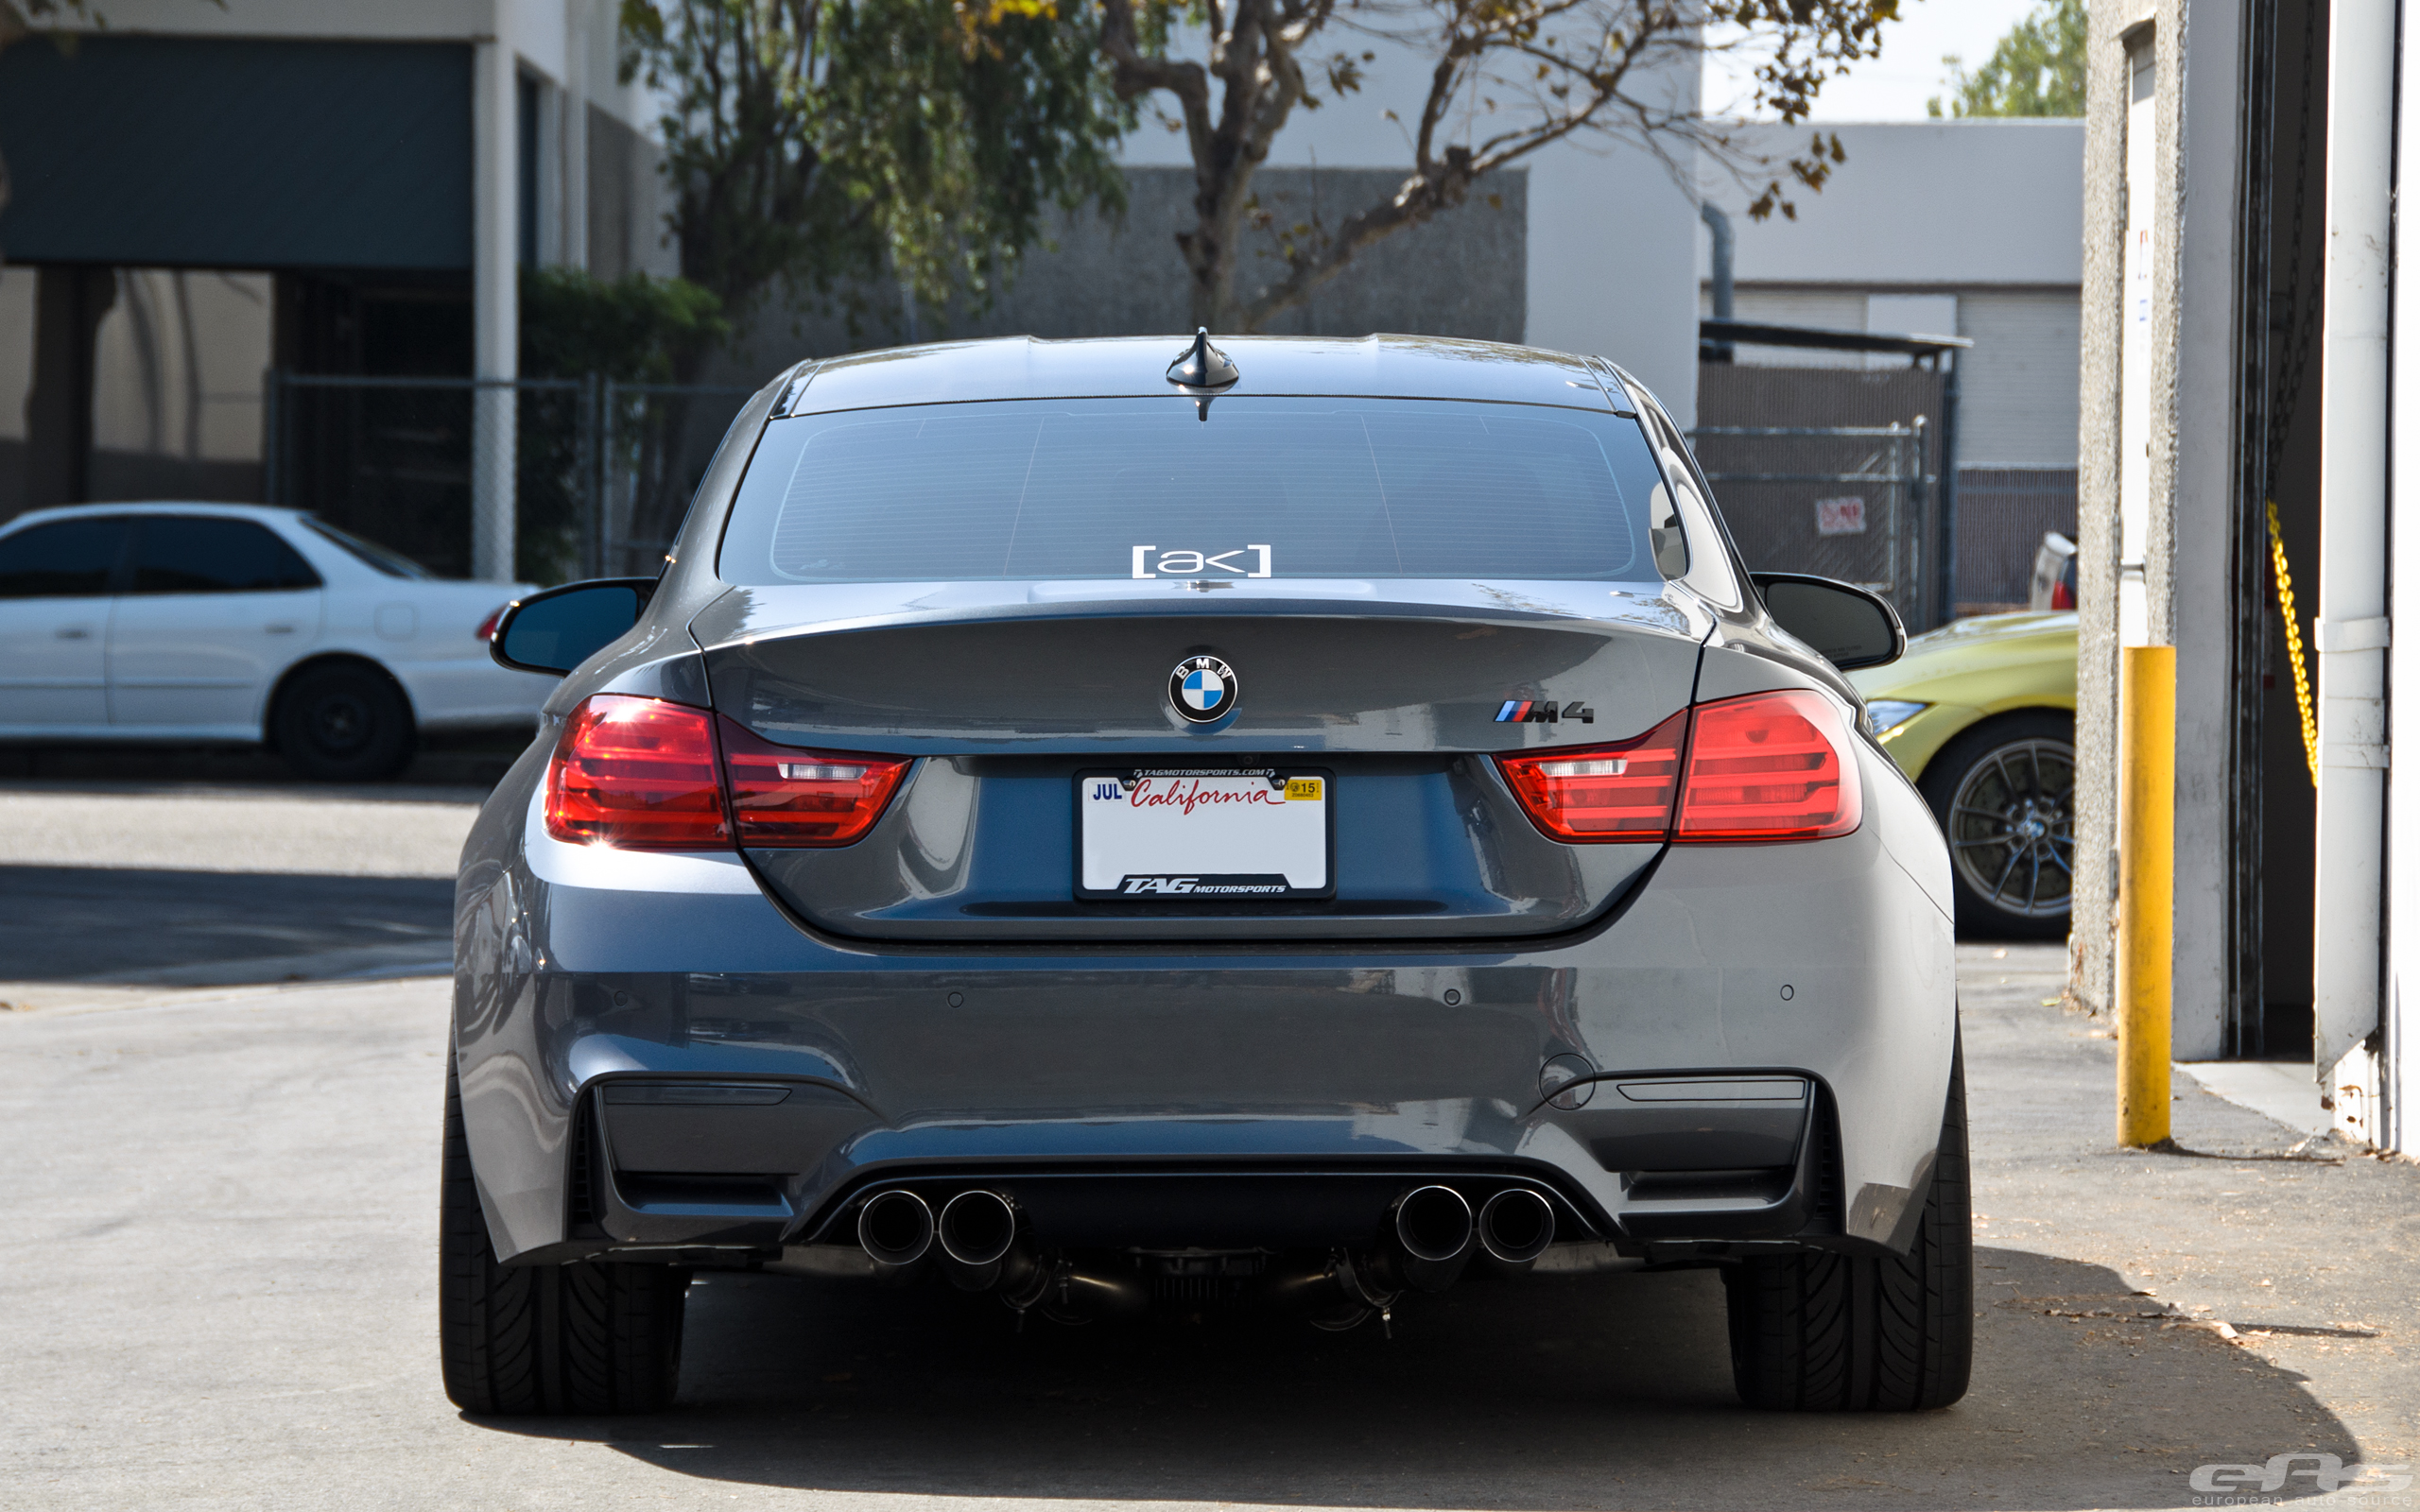 Mineral Grey Bmw M4 On Hre Flowform Wheels By Eas